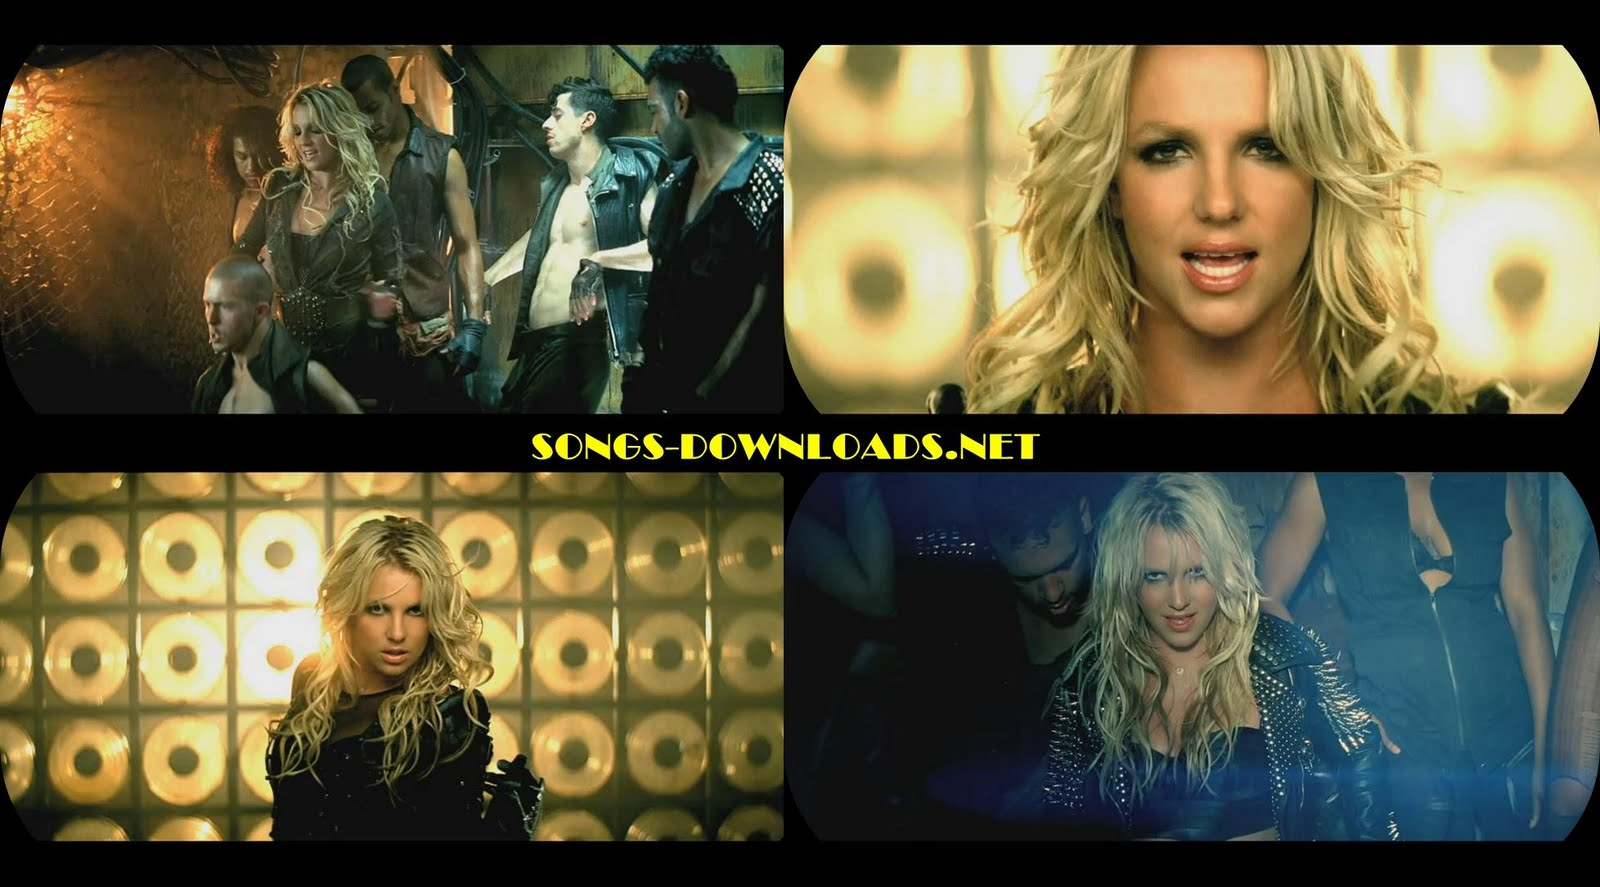 http://4.bp.blogspot.com/-ZLPhA5o1ZXI/TclrRY40DII/AAAAAAAAA9k/j9ZqD5csyeU/s1600/Till+The+World+Ends-Britney+Spears%252Cdownlad+latest+english+video+songs+download%252C+free+english+songs+download+britney+song+Till+The+World+Ends-Britney+Spears.jpg